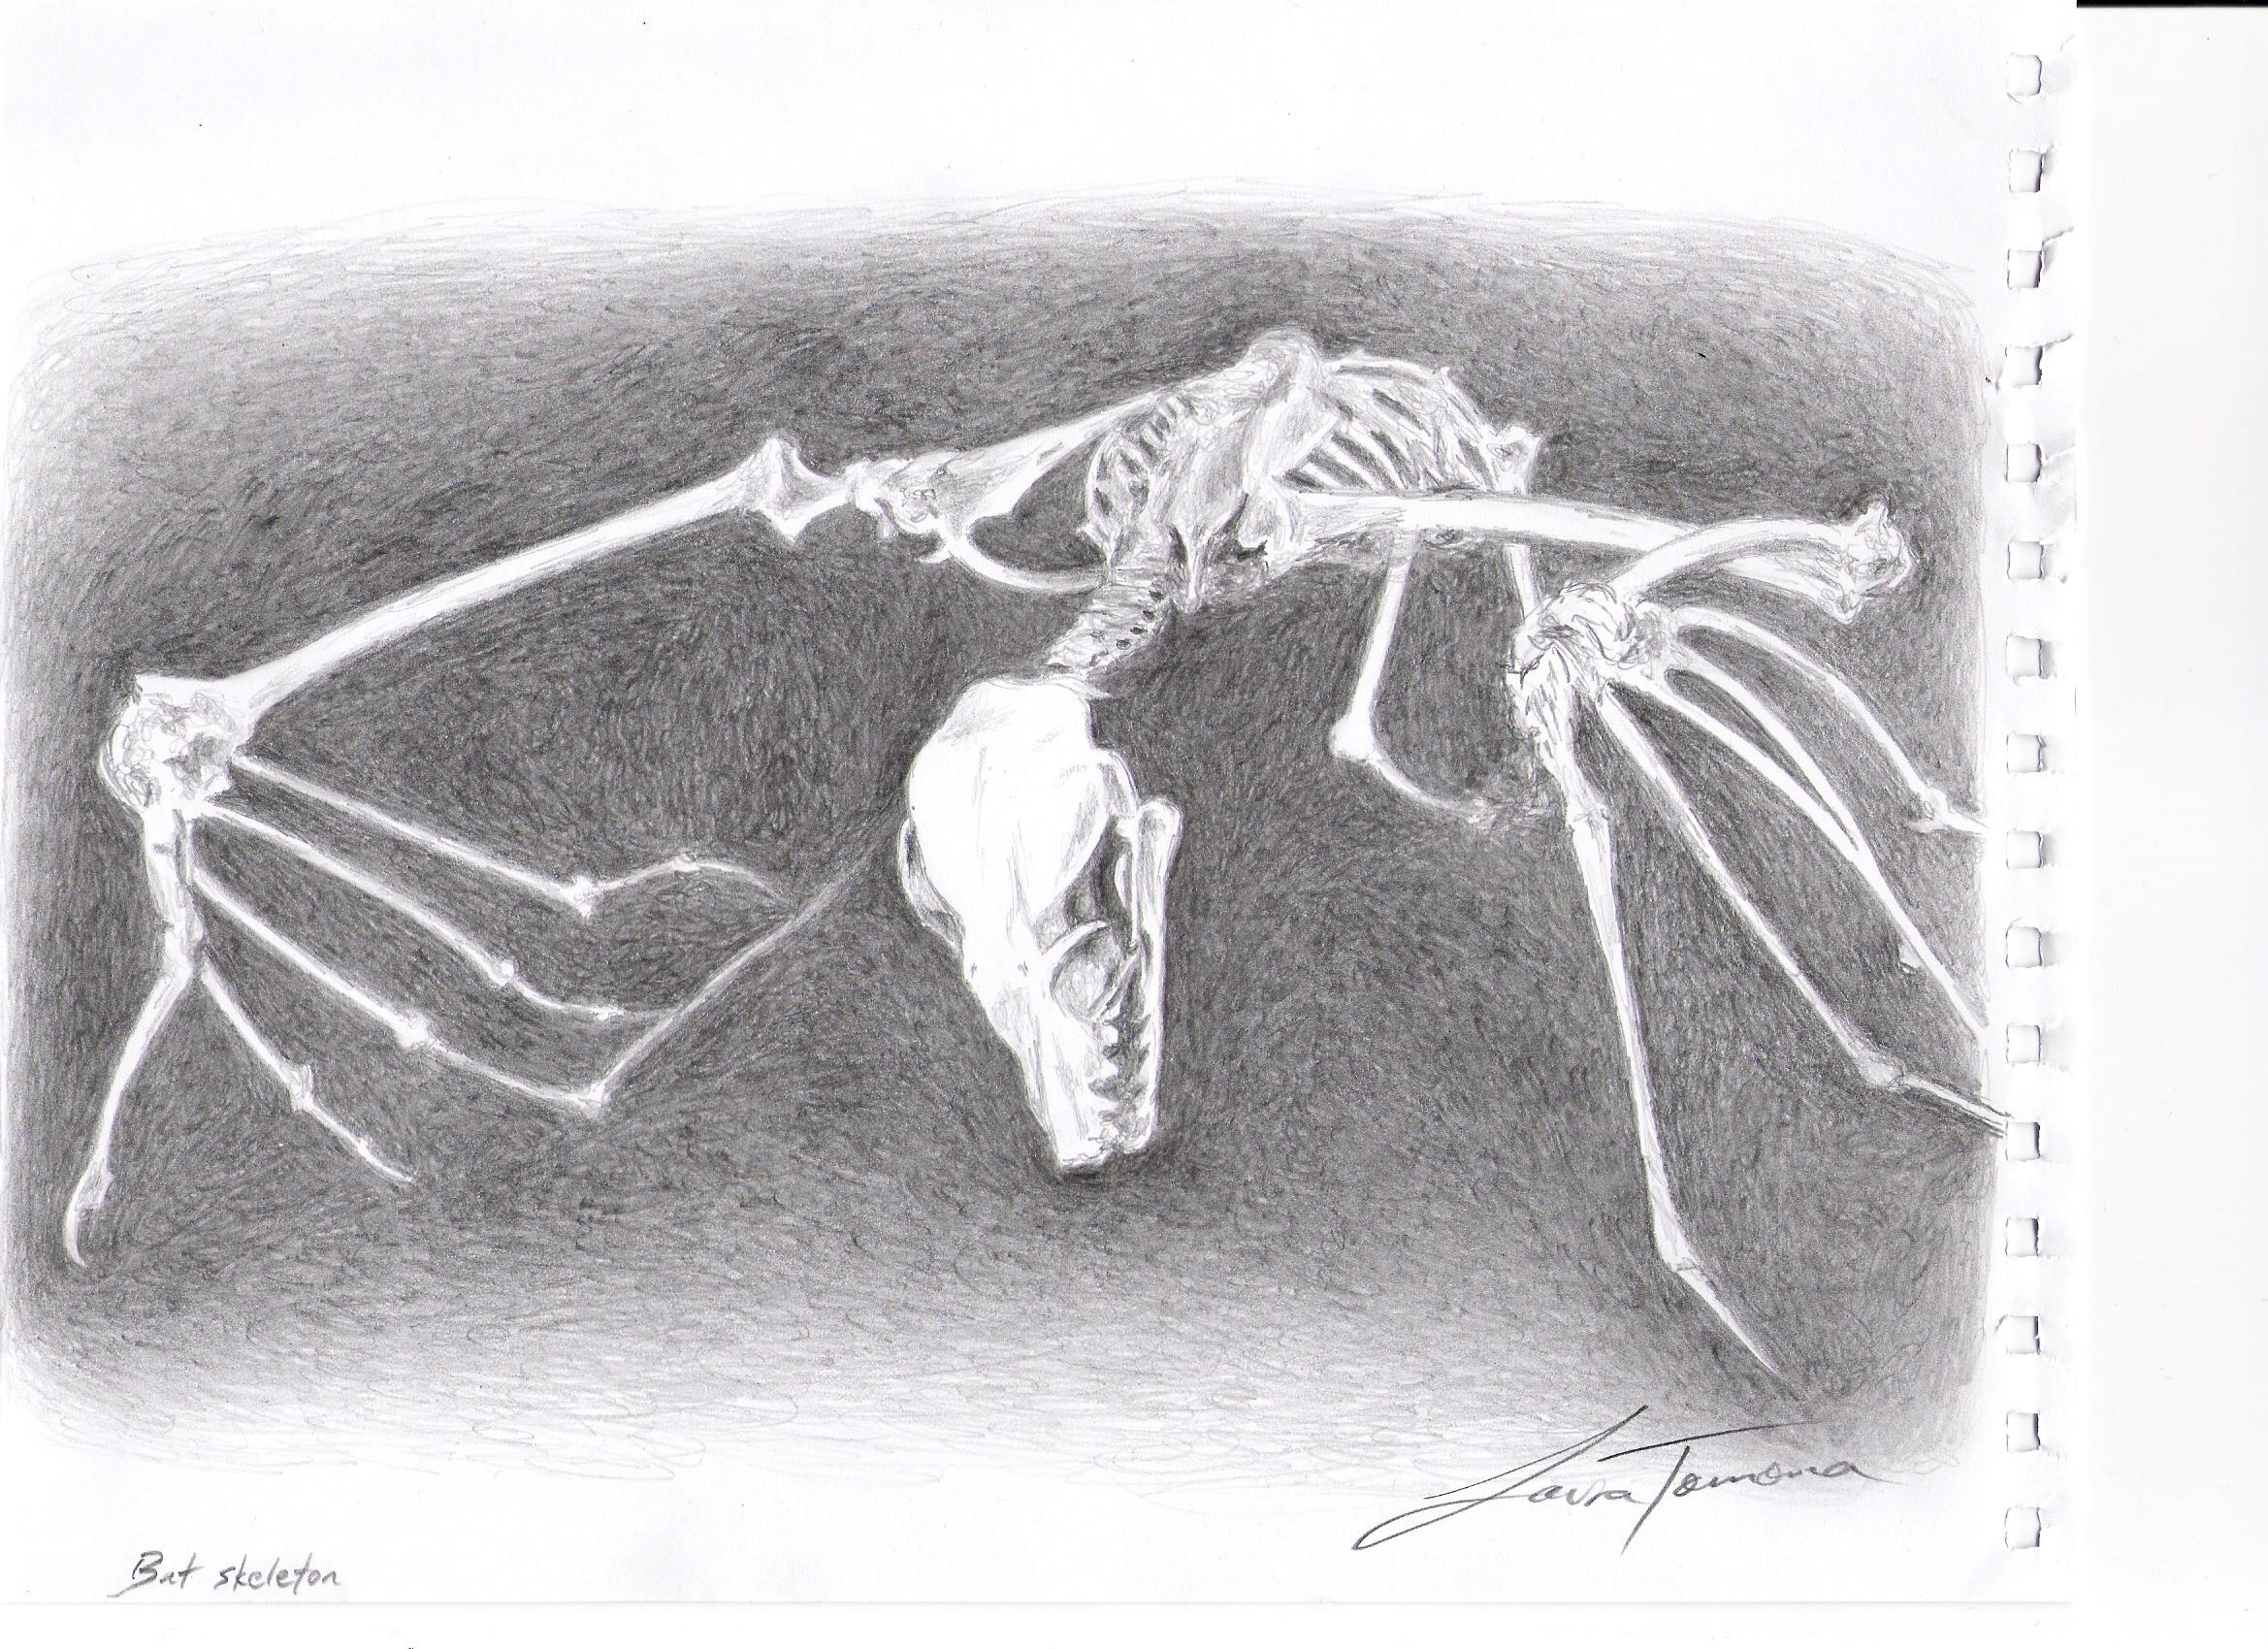 Bat skeleton by Artem-Anima